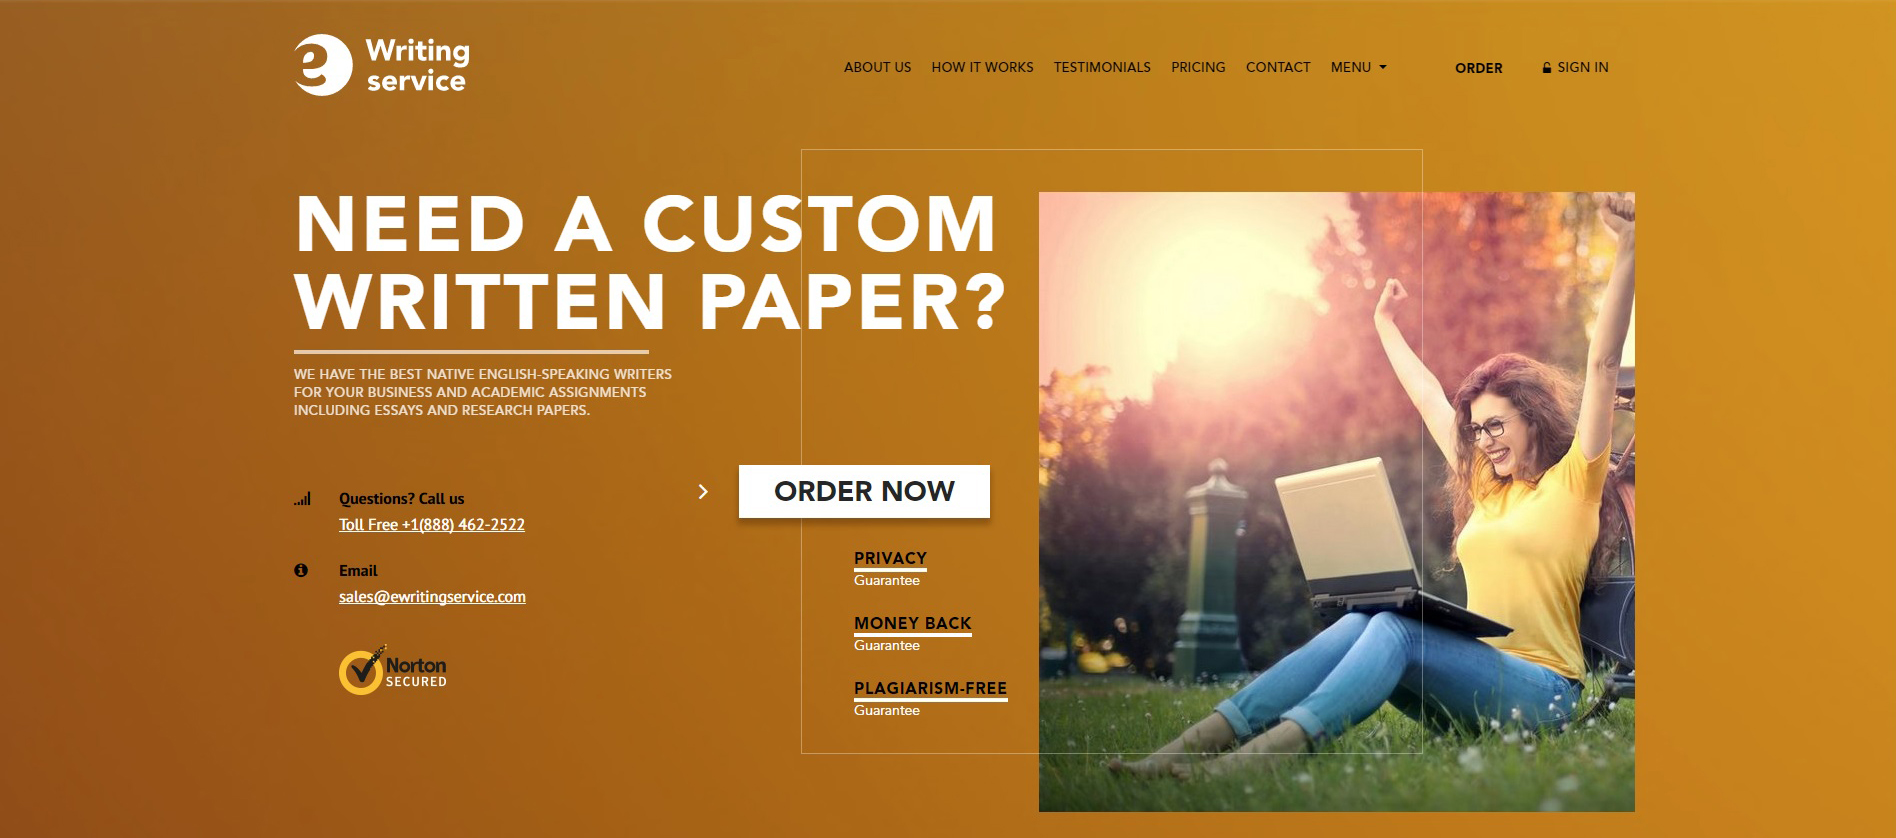 Custom problem solving writers services online delta seat assignments